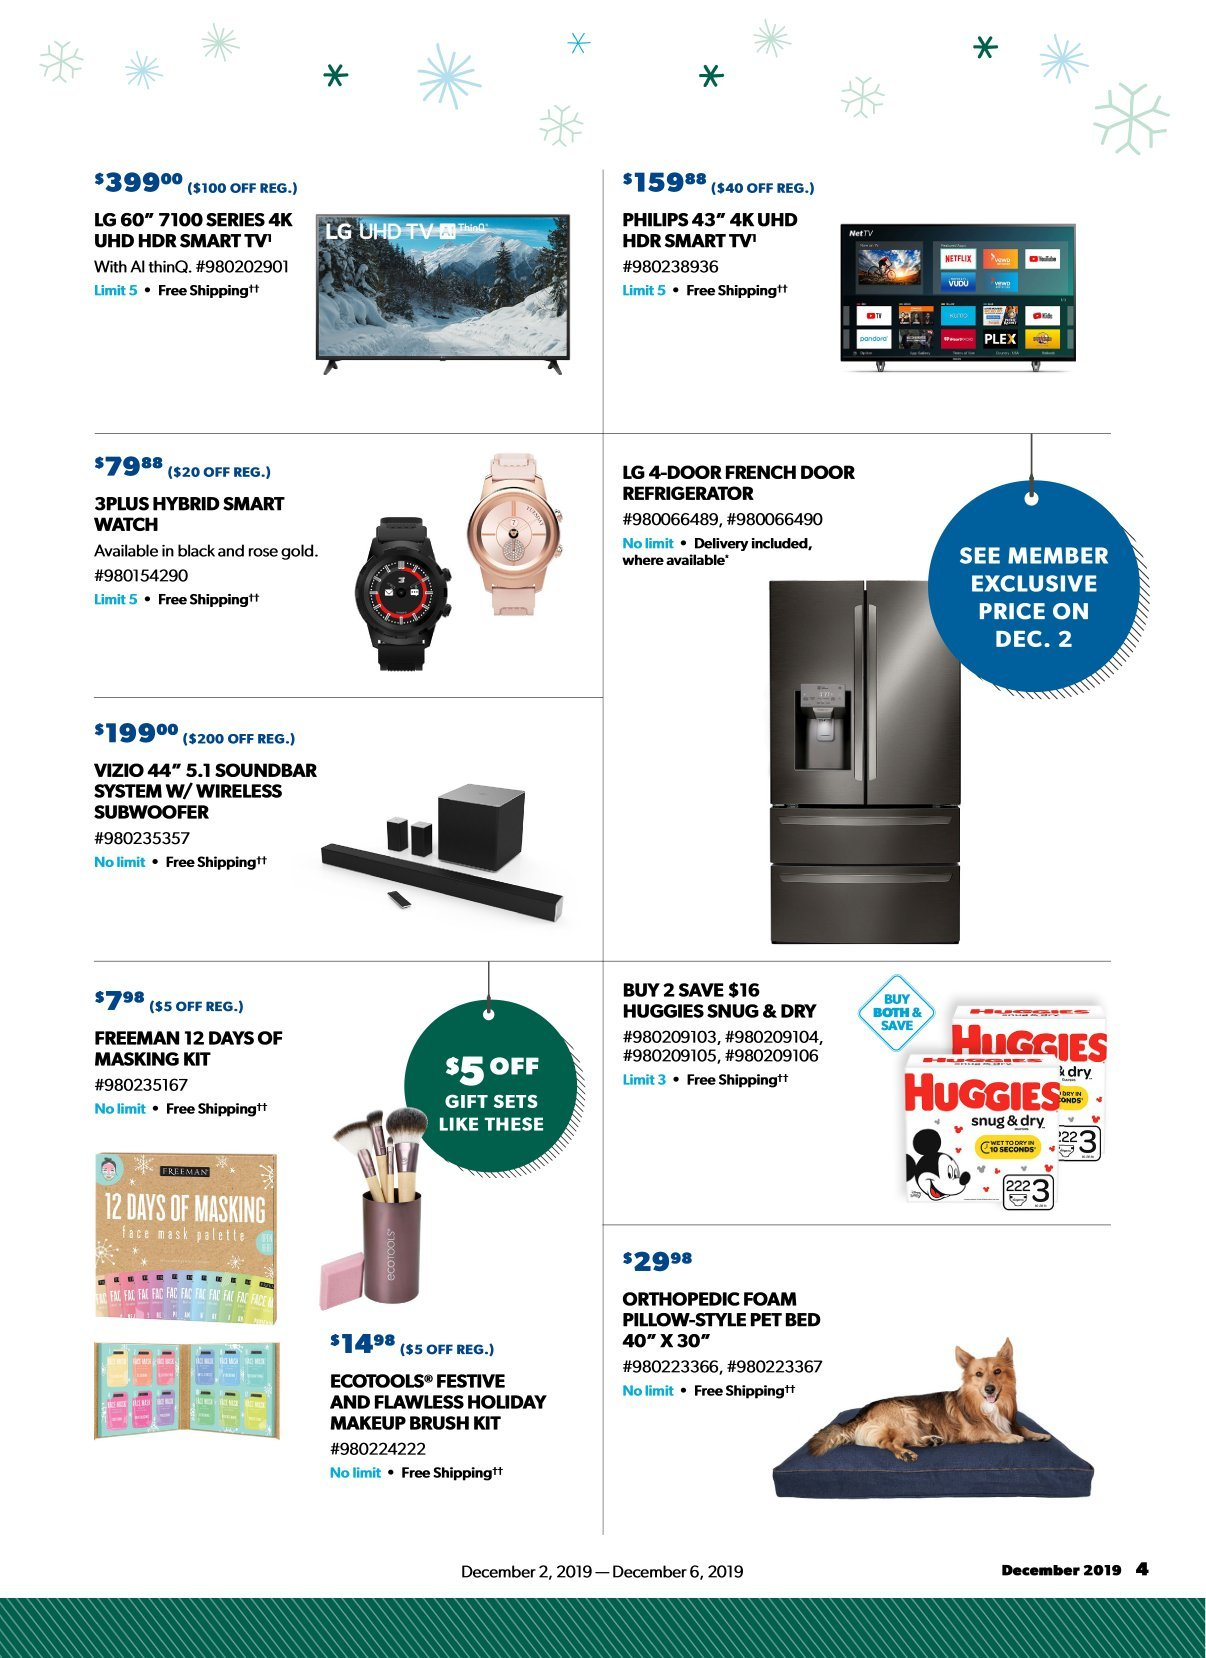 Sam's Club Cyber Monday 2019 Page 3